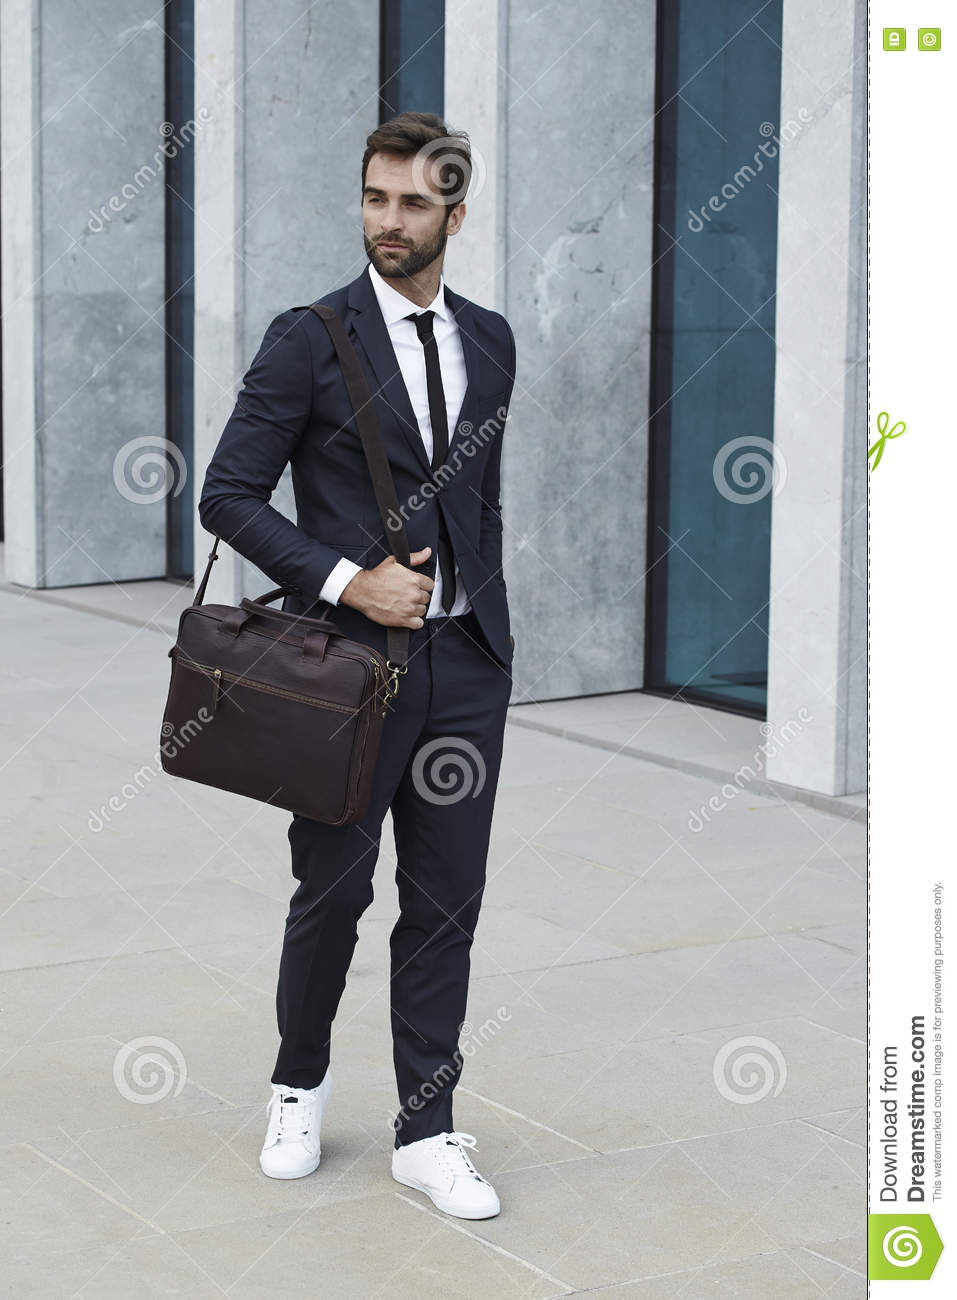 Sharp businessman in suit and tie